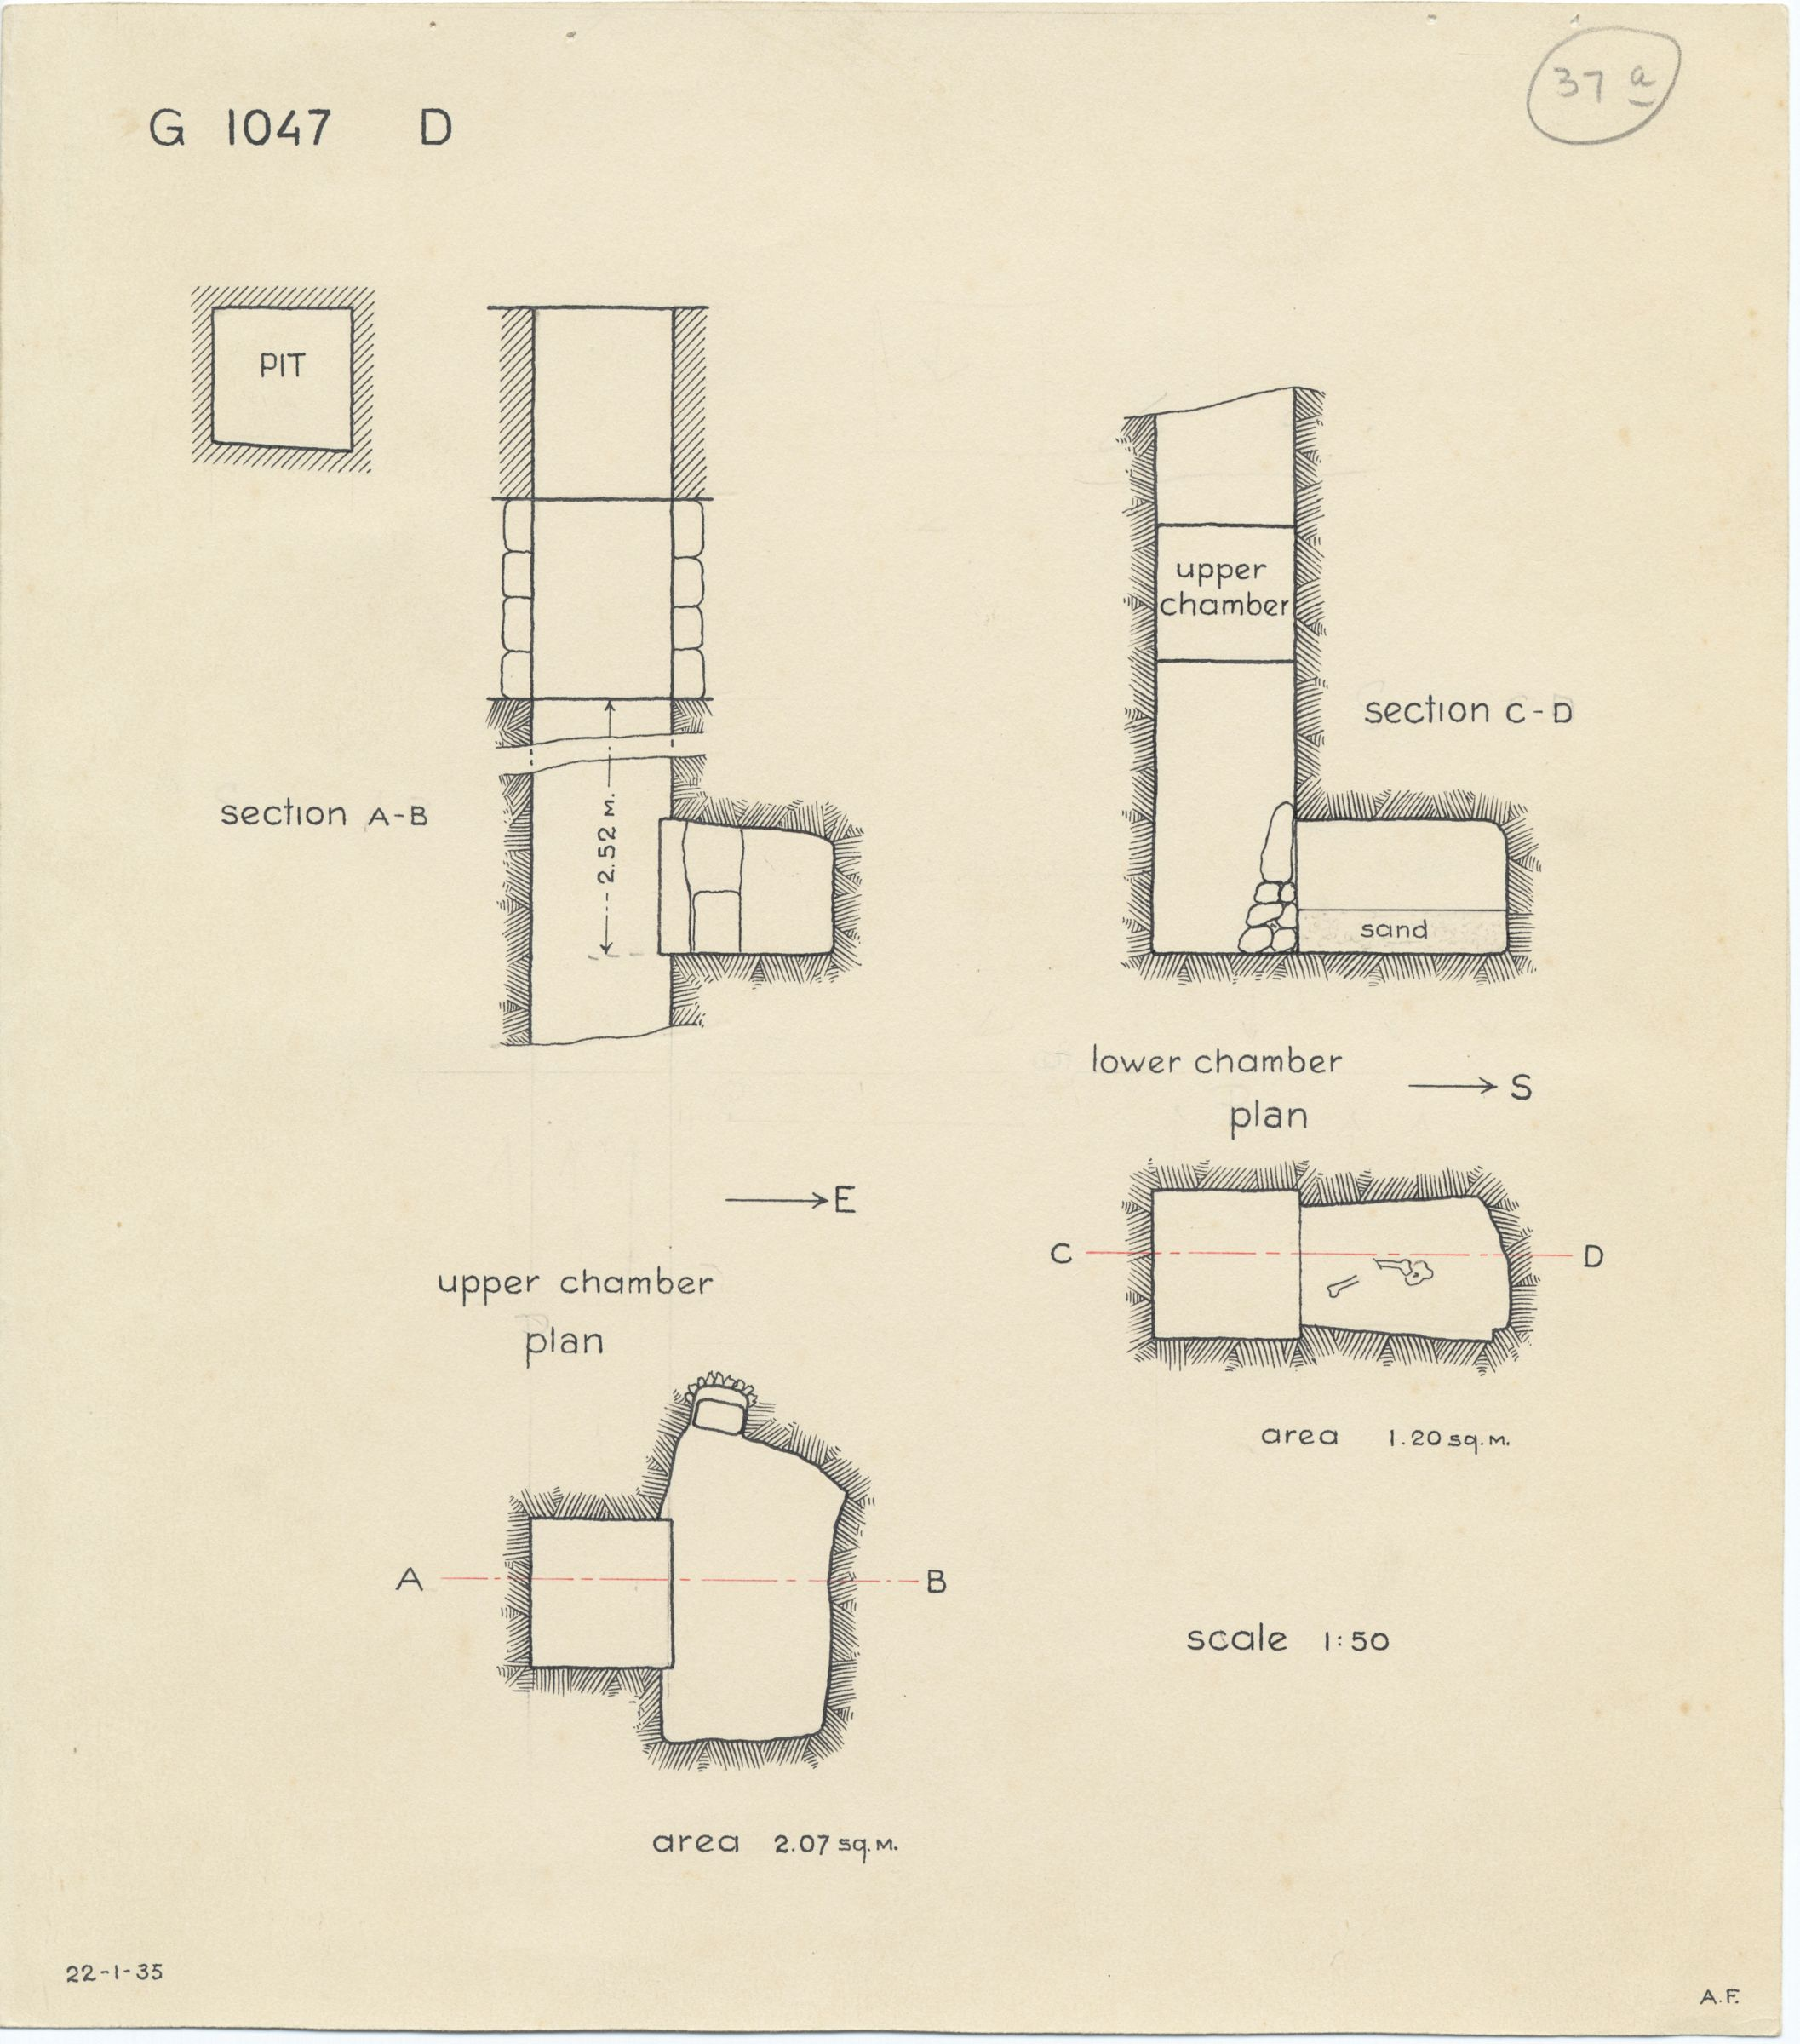 Maps and plans: G 1047, Shaft D